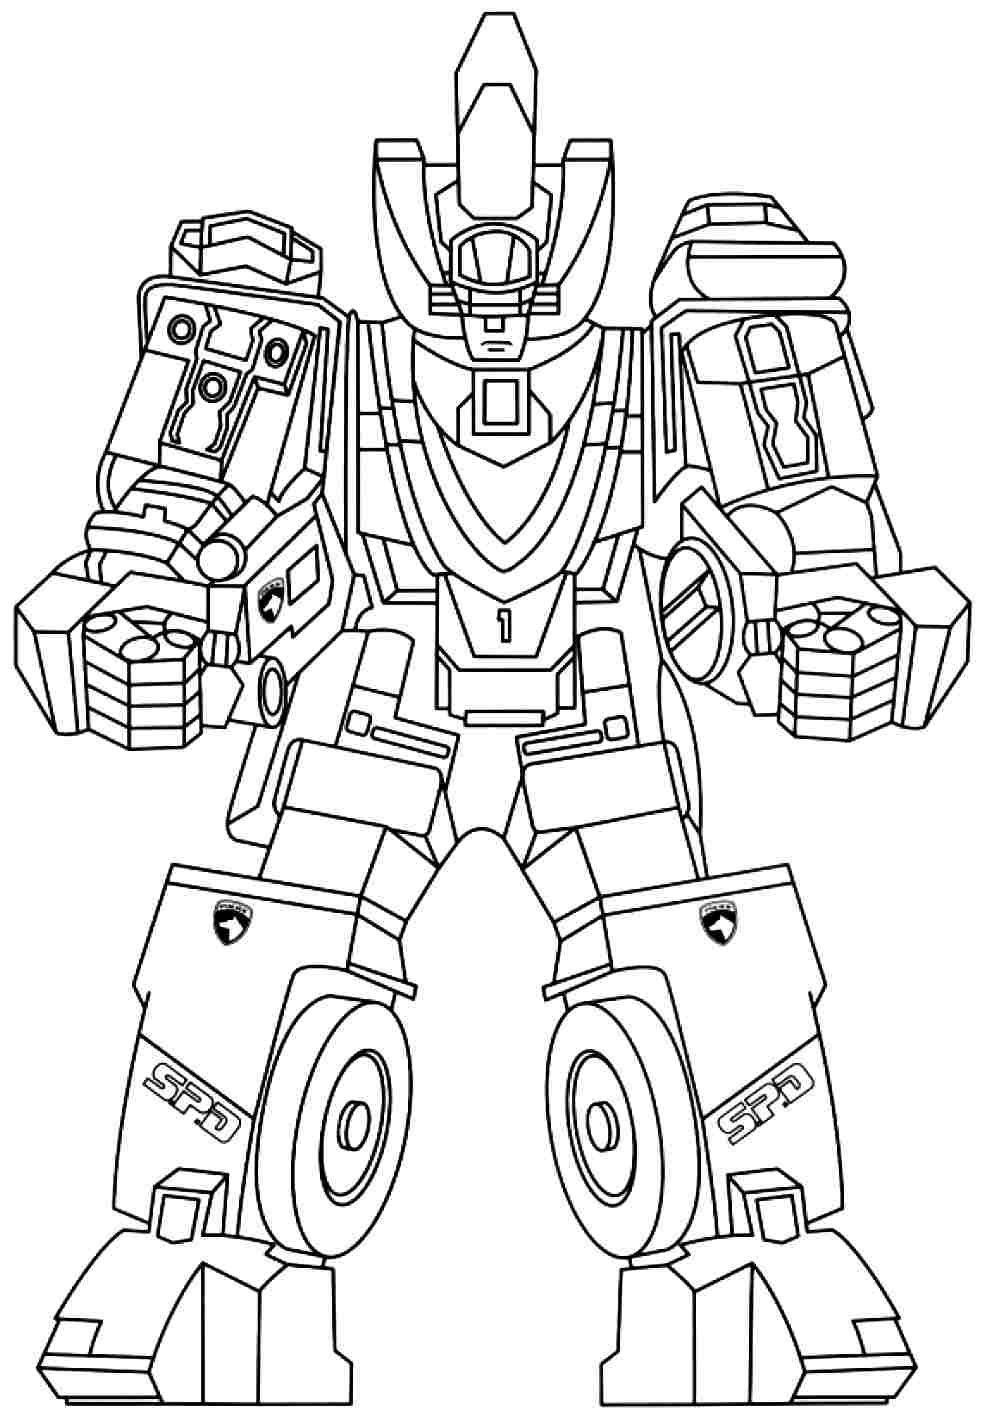 power rangers printable coloring pages free easy to print power rangers coloring pages tulamama printable pages power rangers coloring